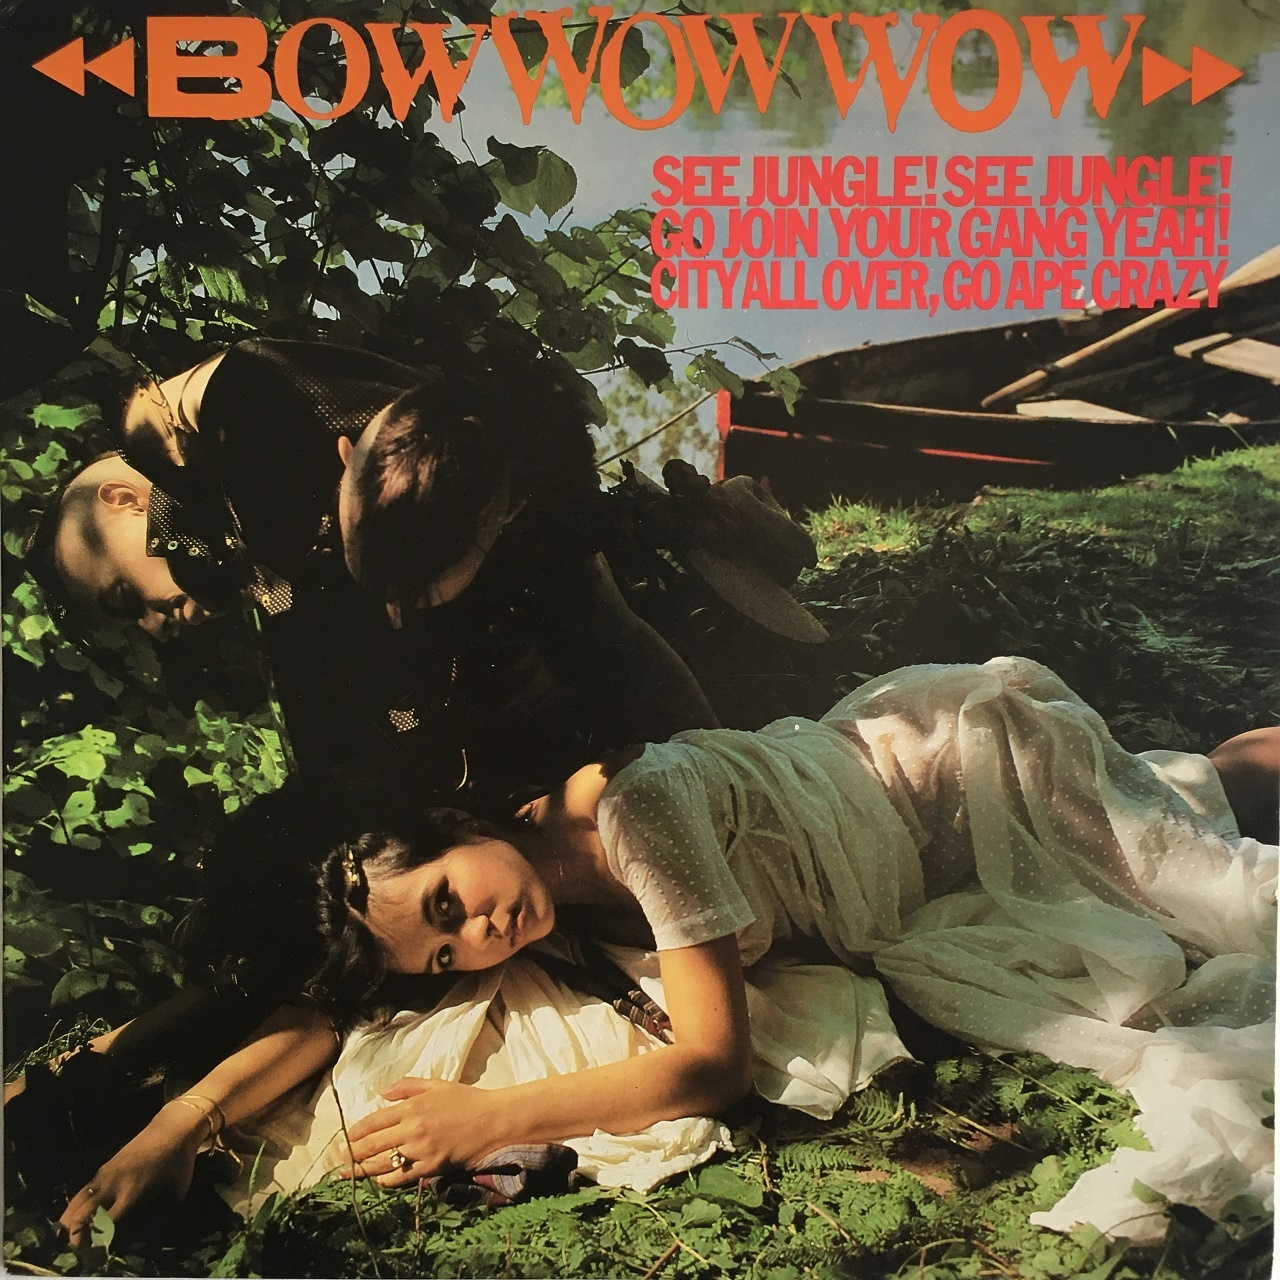 【LP・米盤】Bow Wow Wow / See Jungle! See Jungle! Go Join Your Gang Yeah! City All Over, Go Ape Crazy